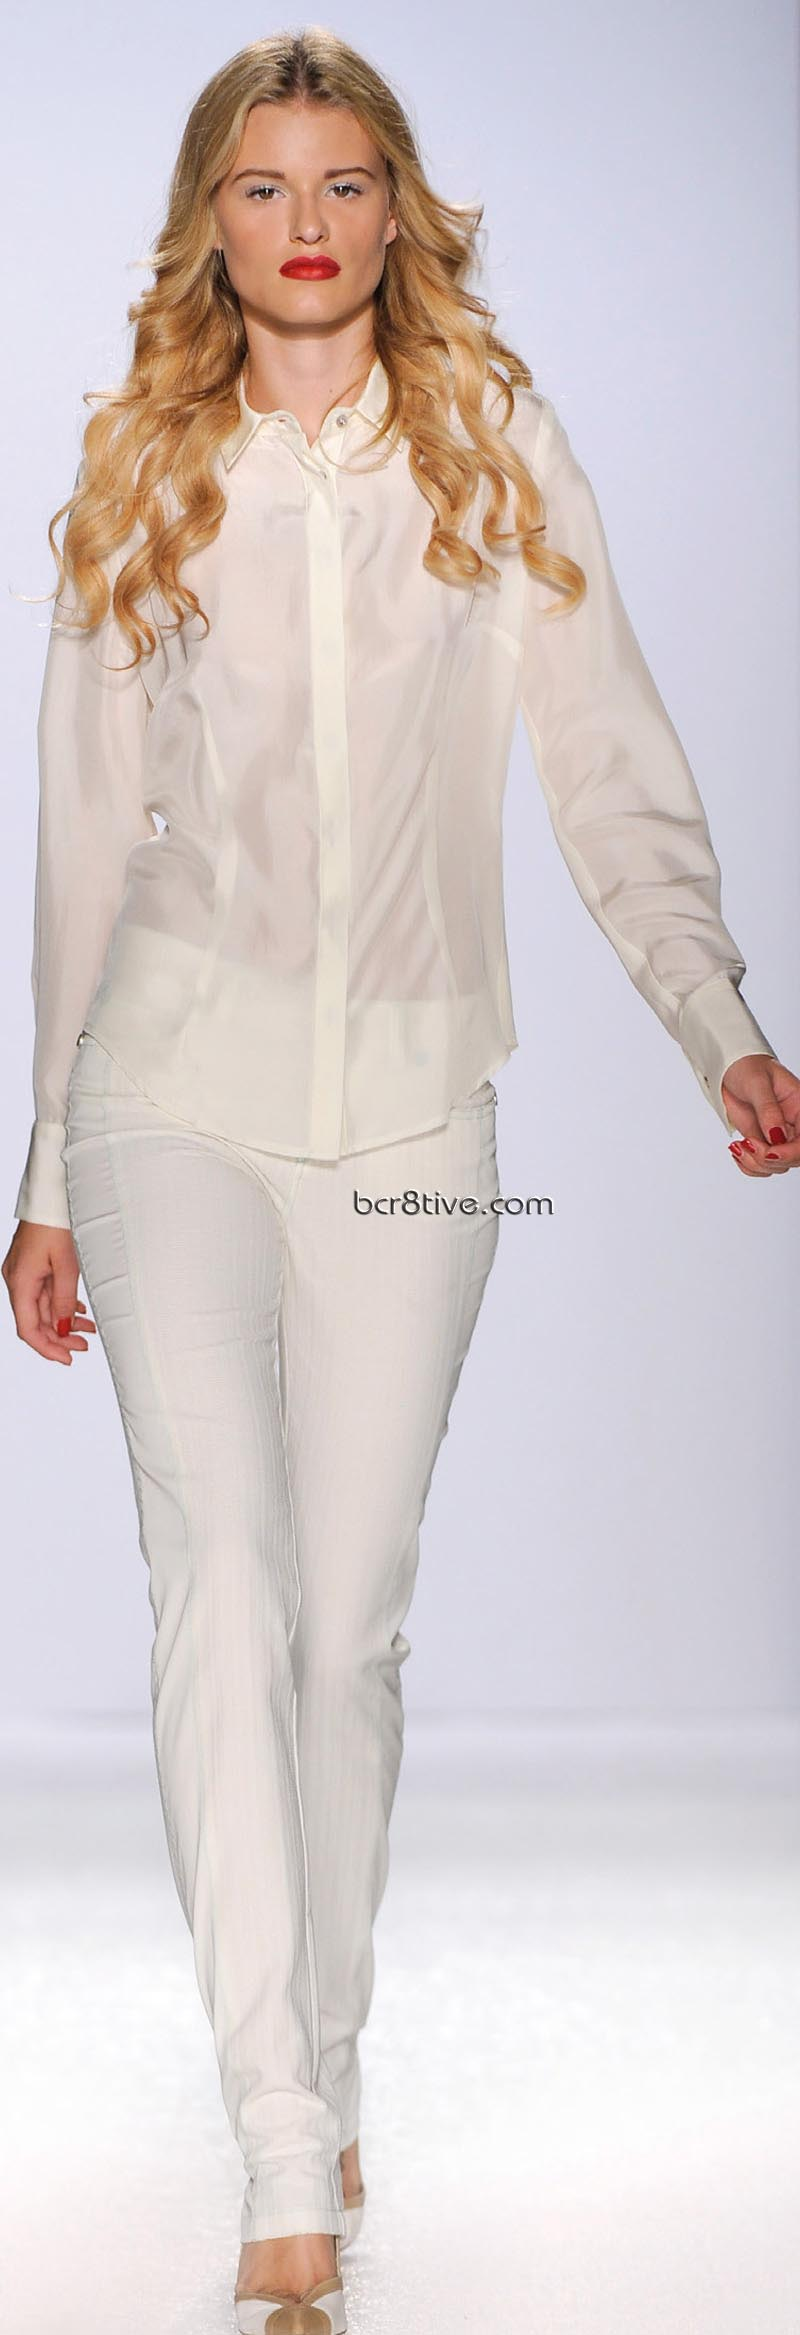 Gattinoni Spring Summer 2011 Ready to Wear - Royal Blues